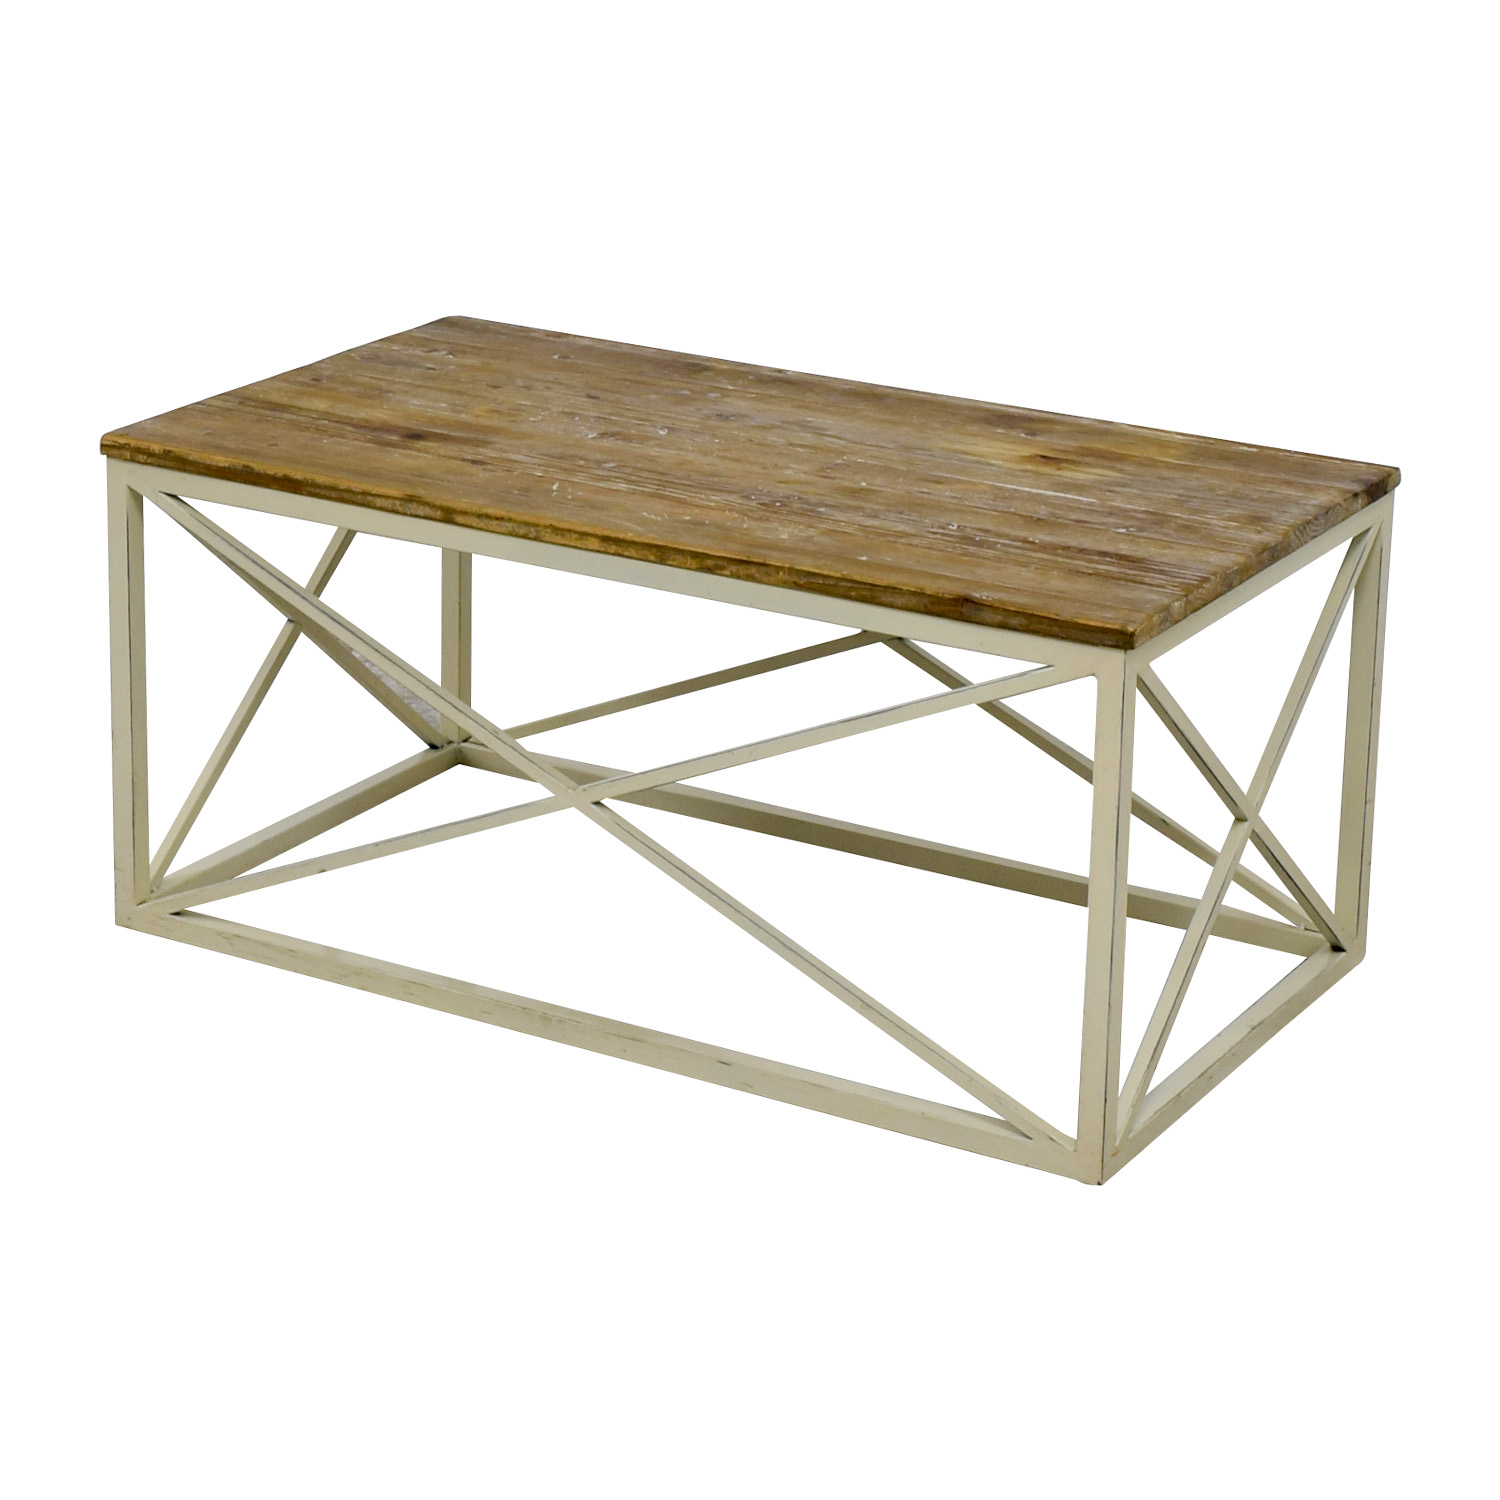 67 Off Wayfair Wayfair Wooden And Metal Coffee Table Tables